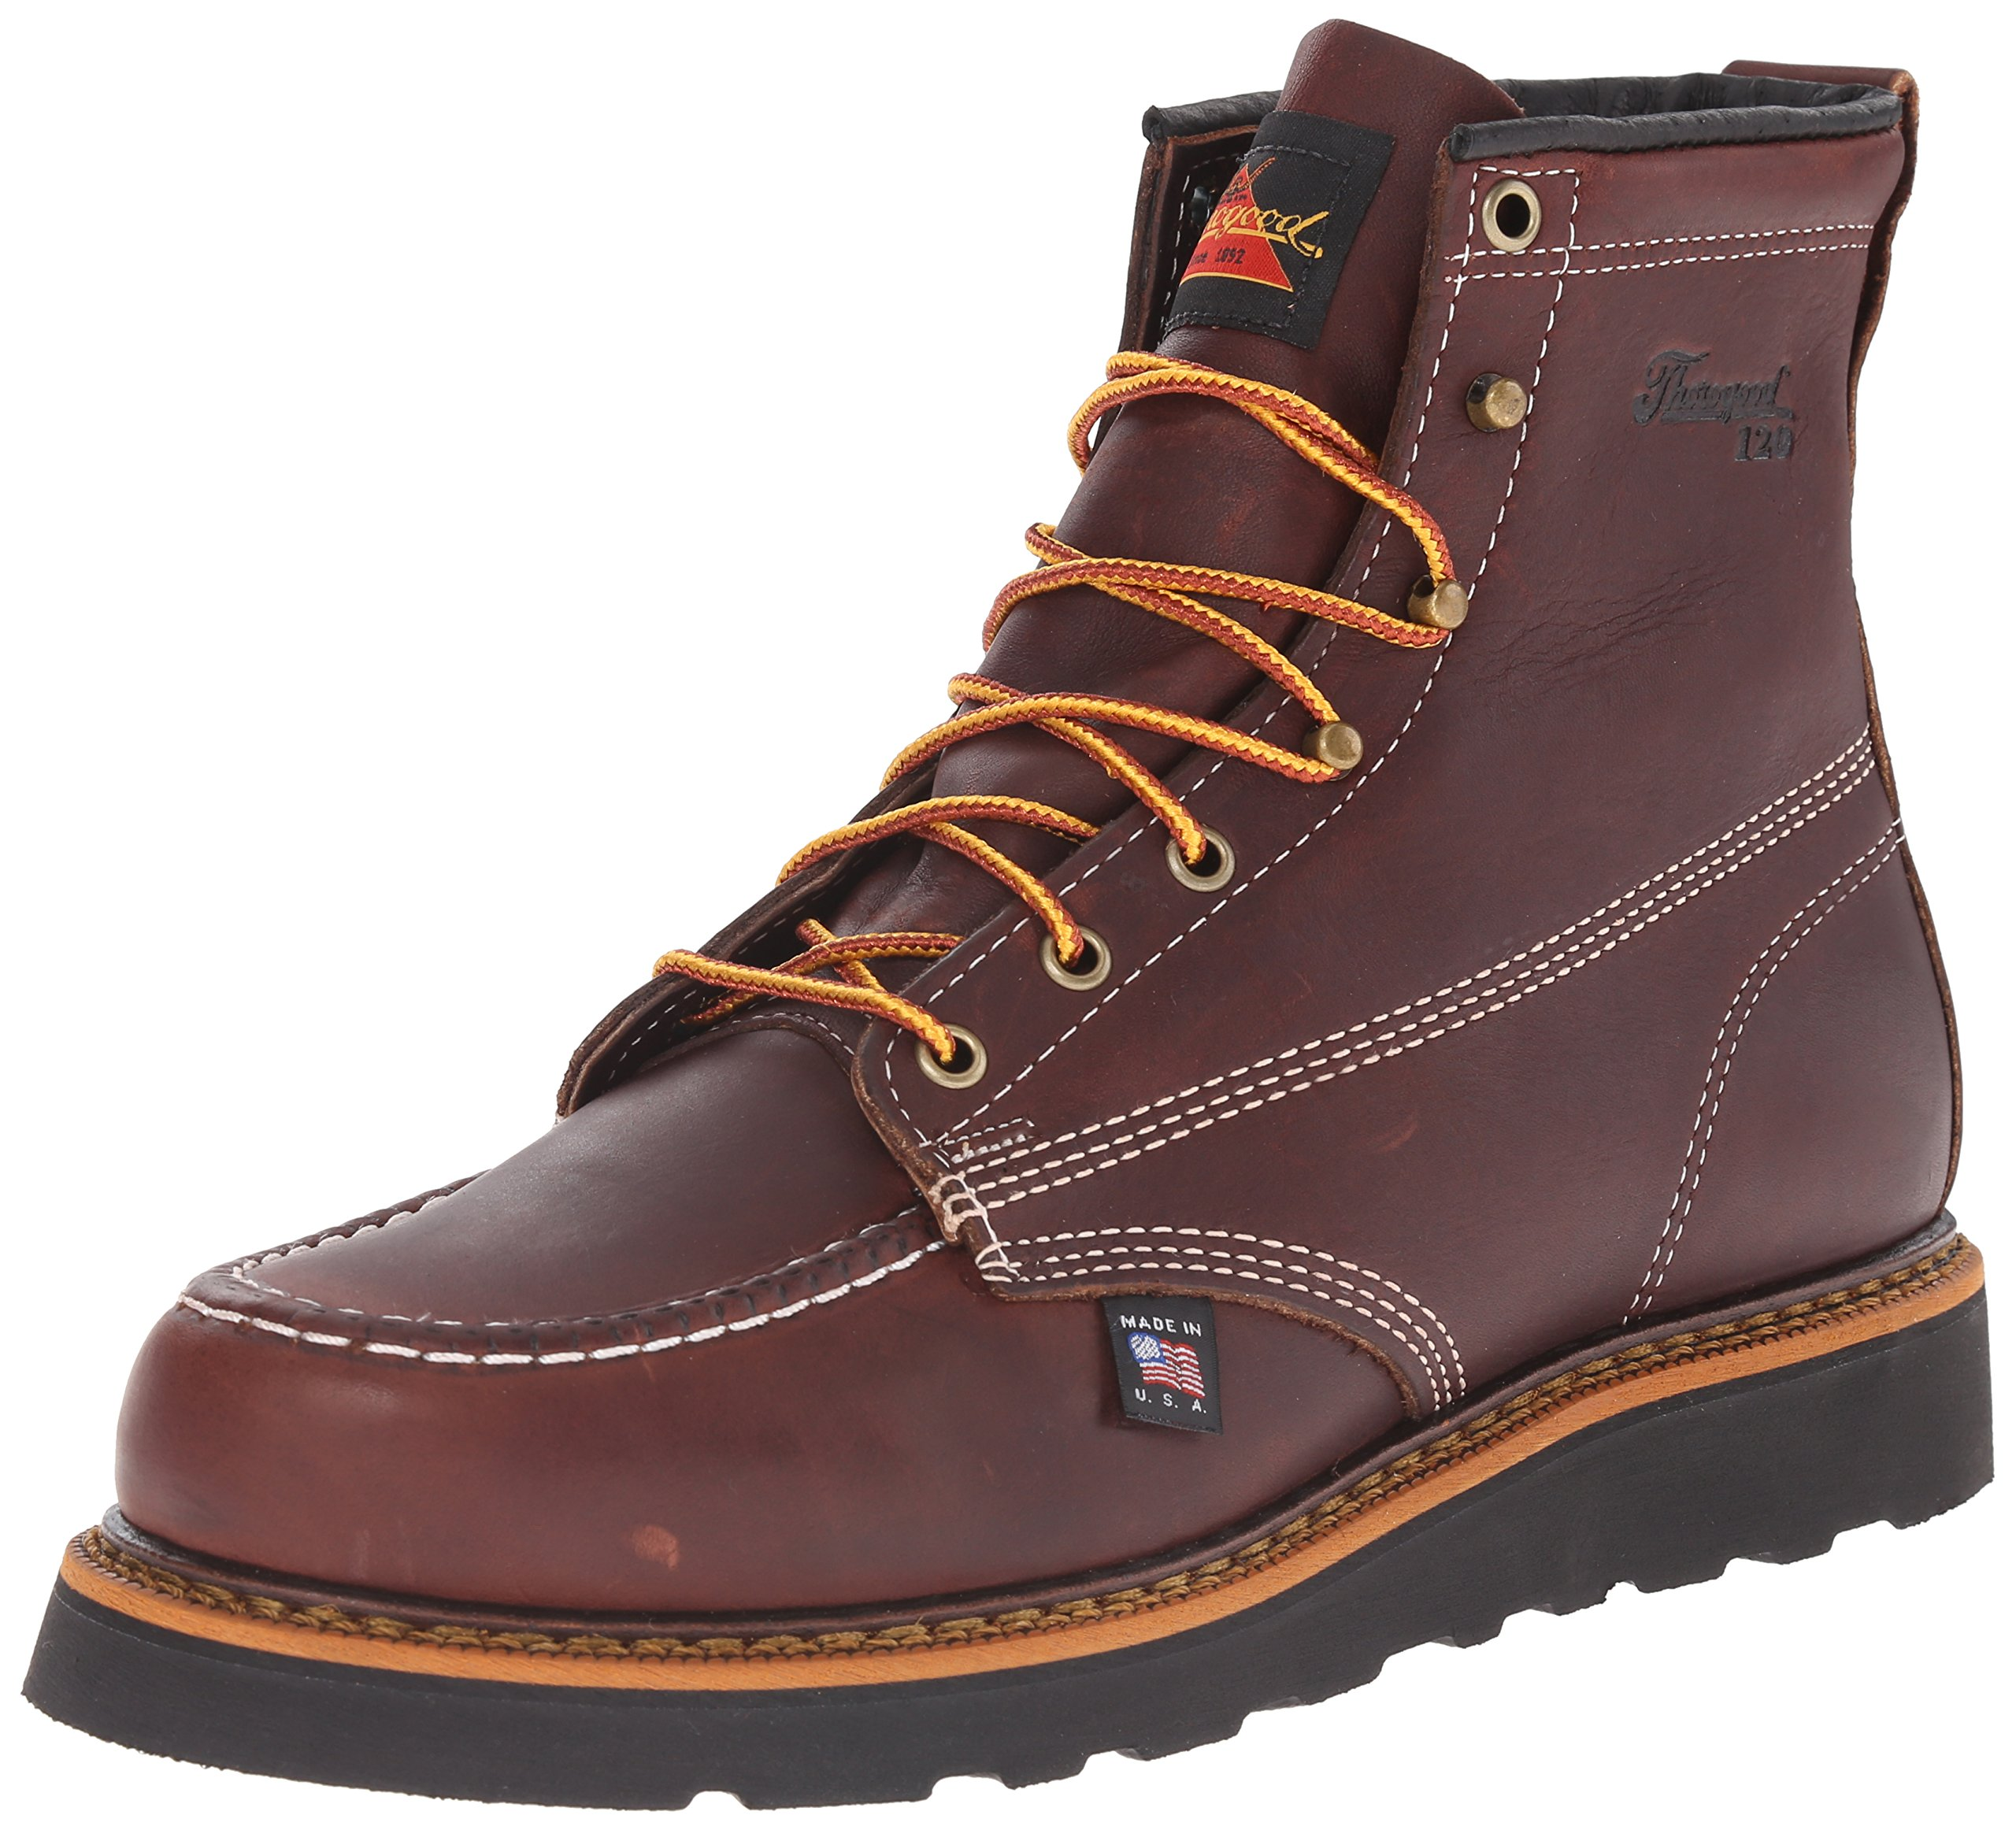 Thorogood-American-Heritage-Men-039-s-6-034-Moc-Toe-Max-Wedge-Non-Safety-Boots thumbnail 13